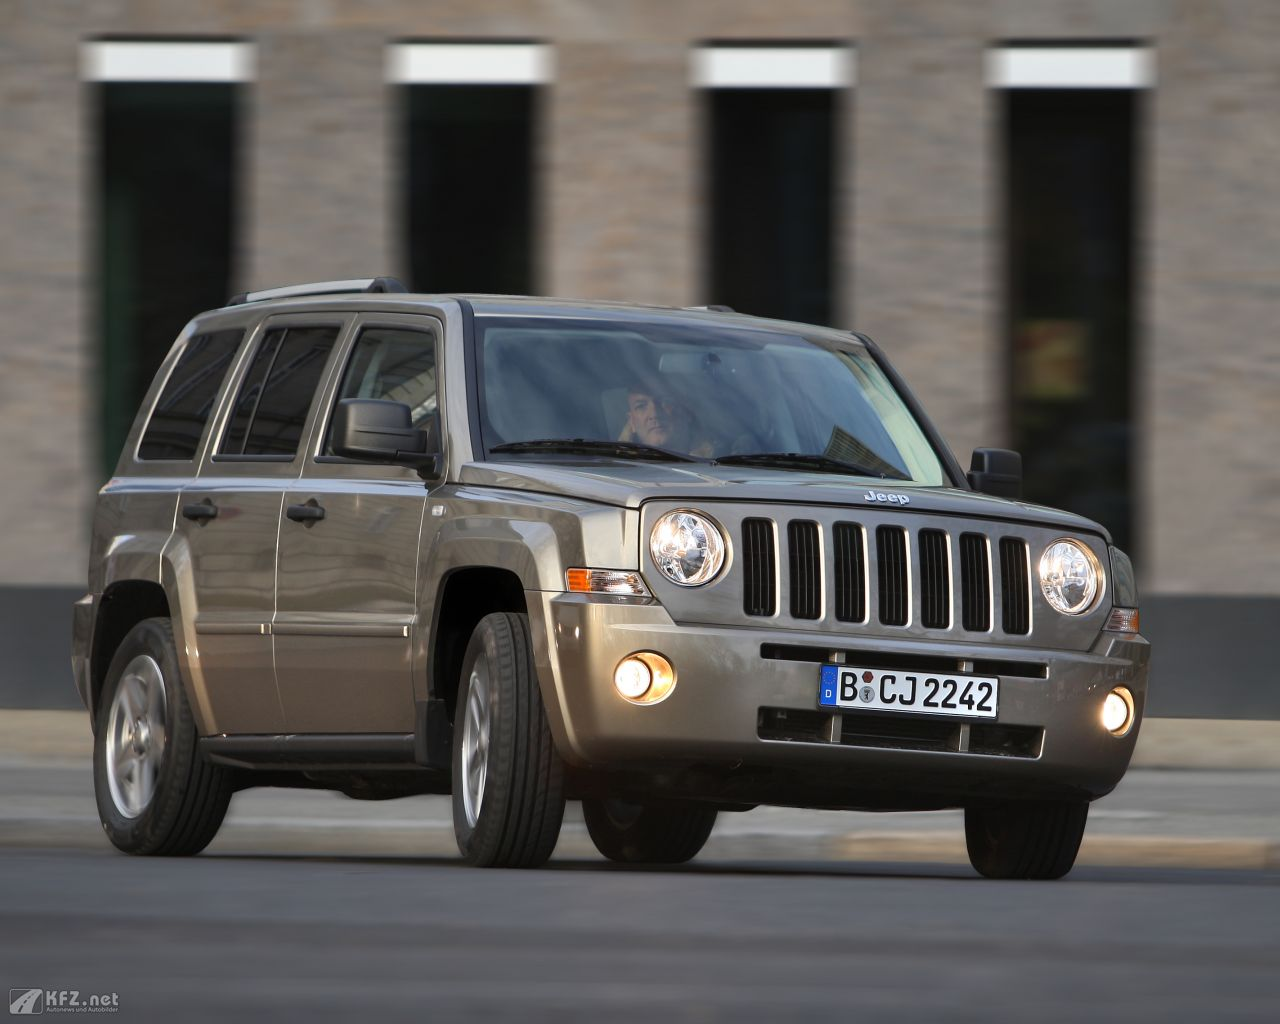 jeep-patriot-1280x1024-8